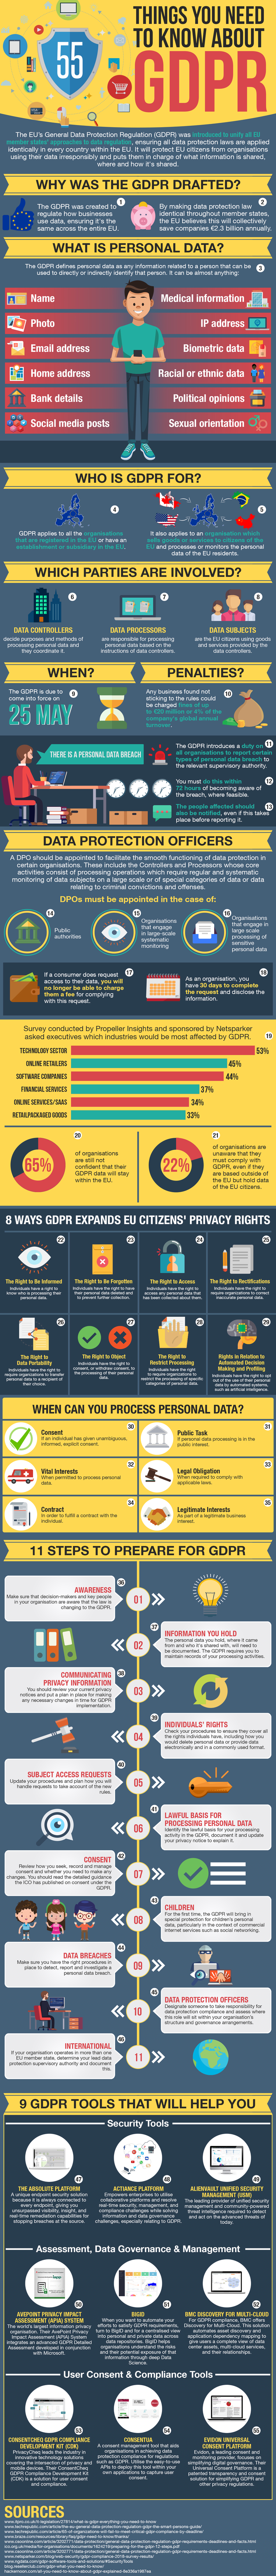 about gdpr